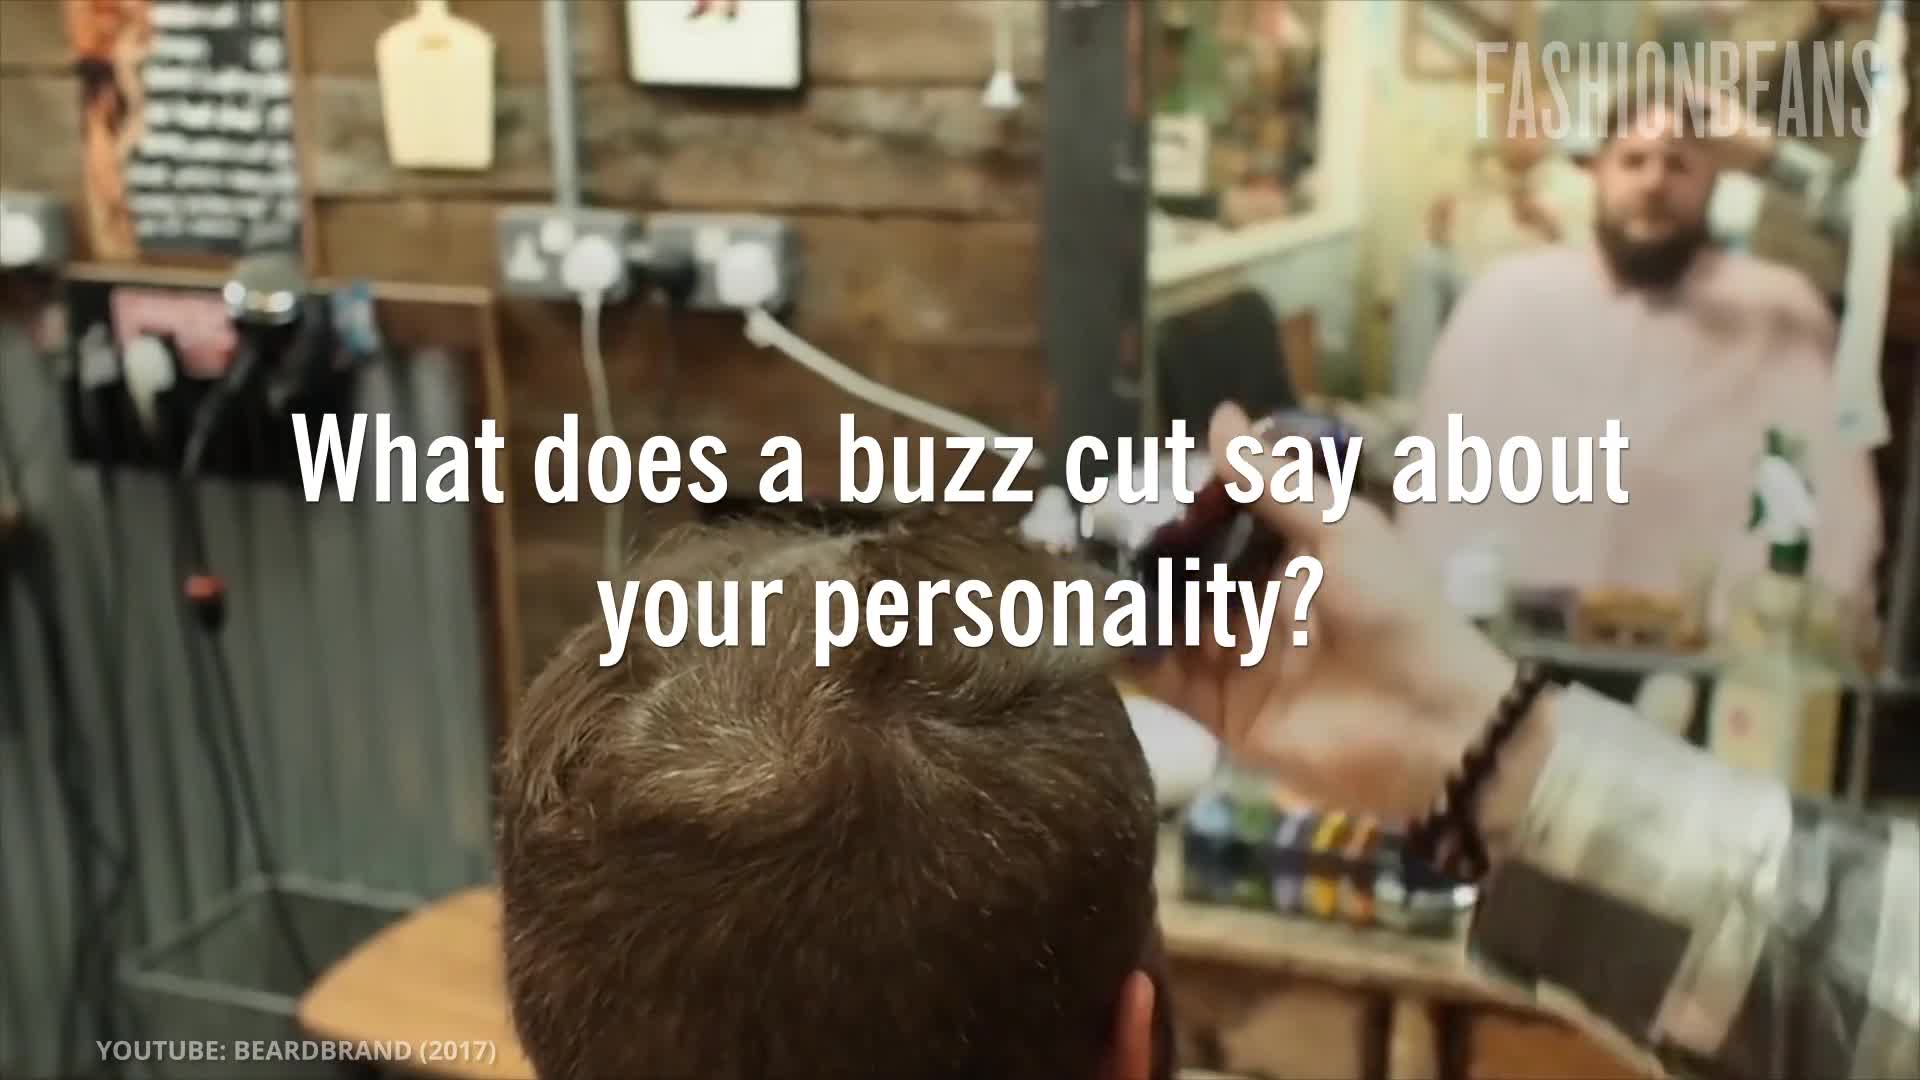 Here's What A Man's Hairstyle Says About His Personality